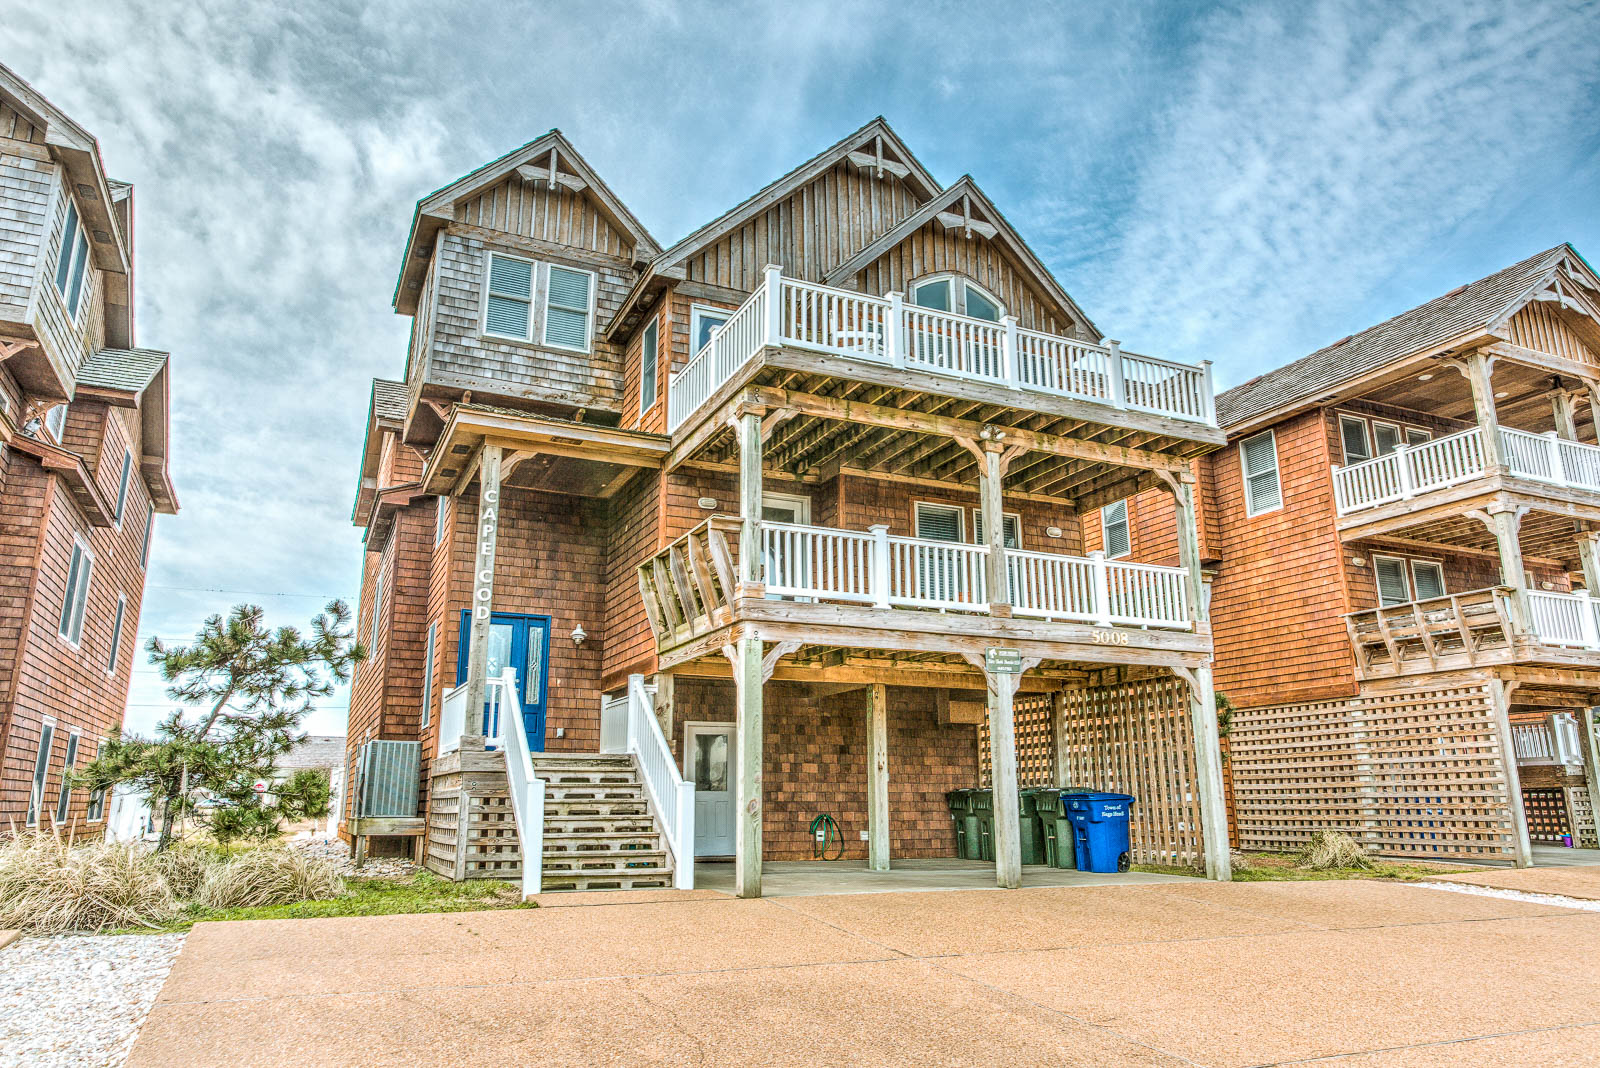 outerbanks com vacation rentals banks cottage avon outer hero